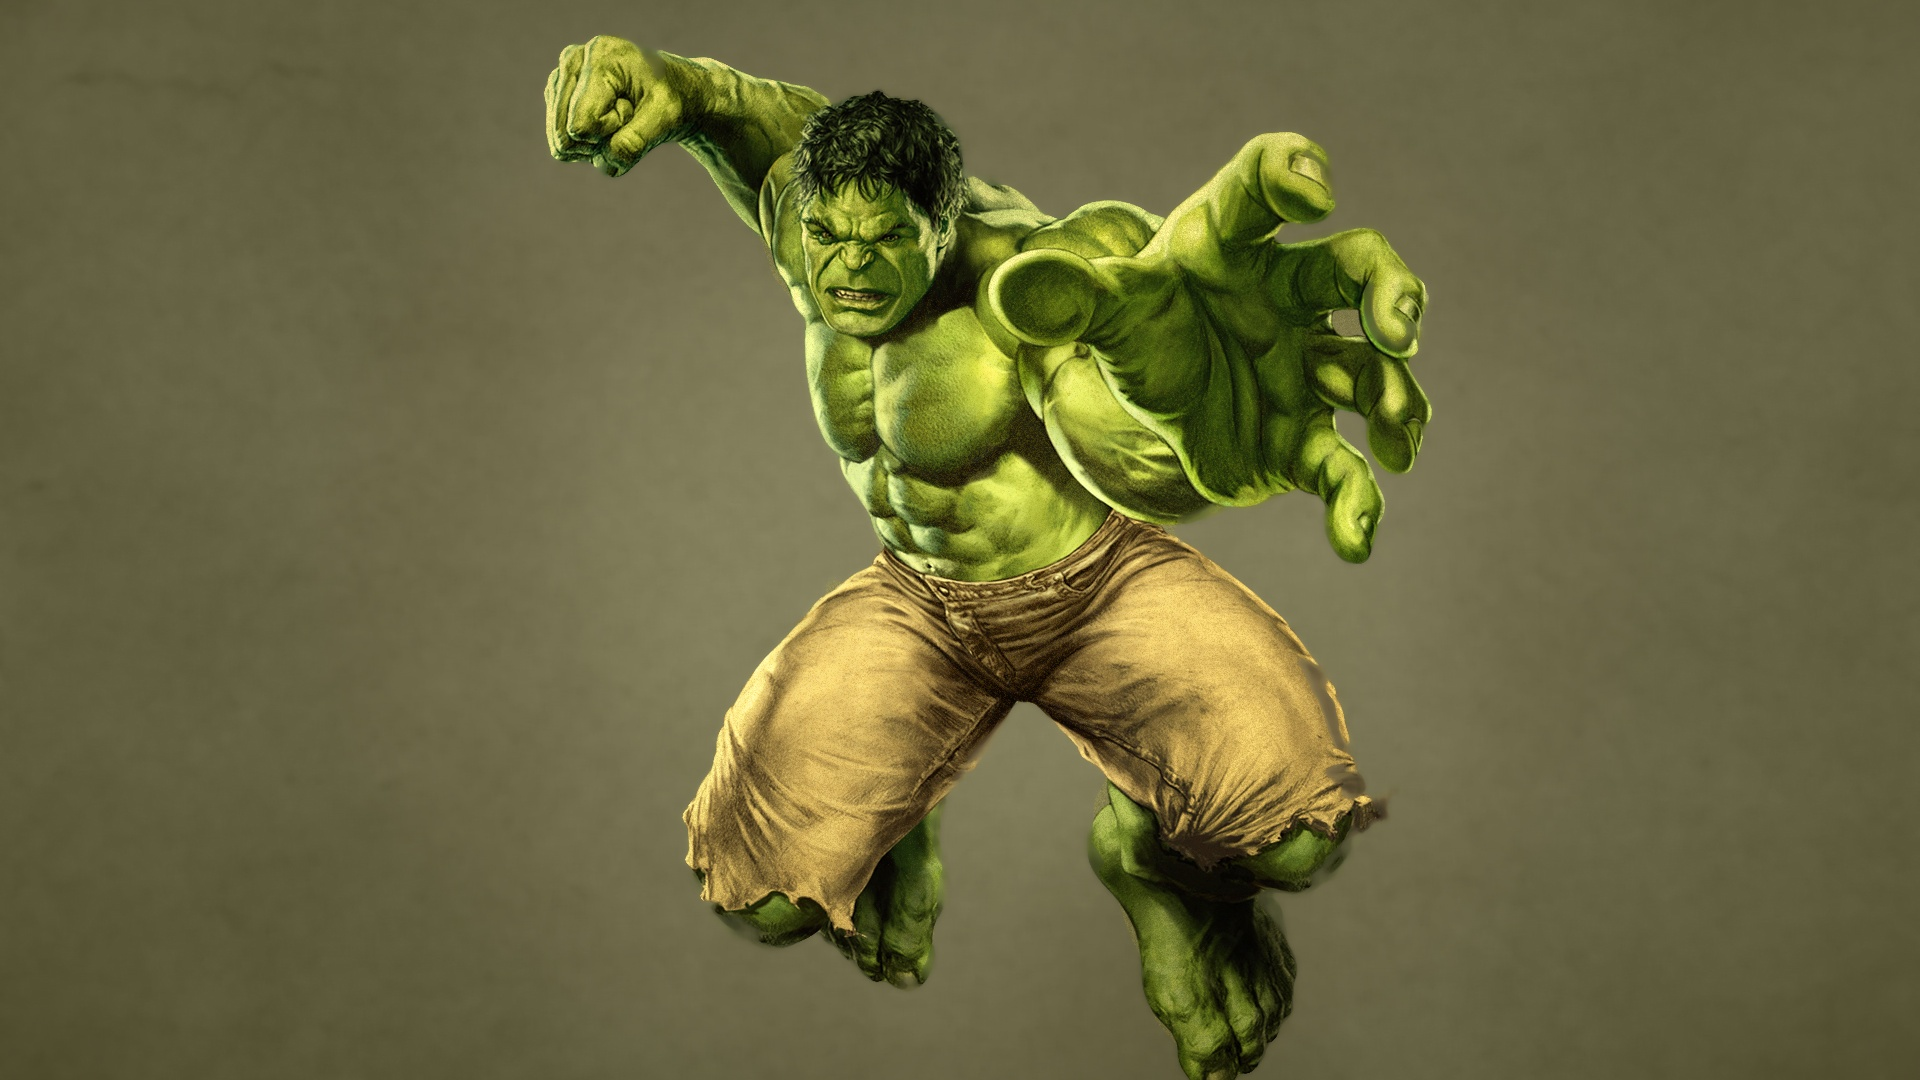 Hulk Wallpapers HD 1920x1080 39103 KB 1920x1080